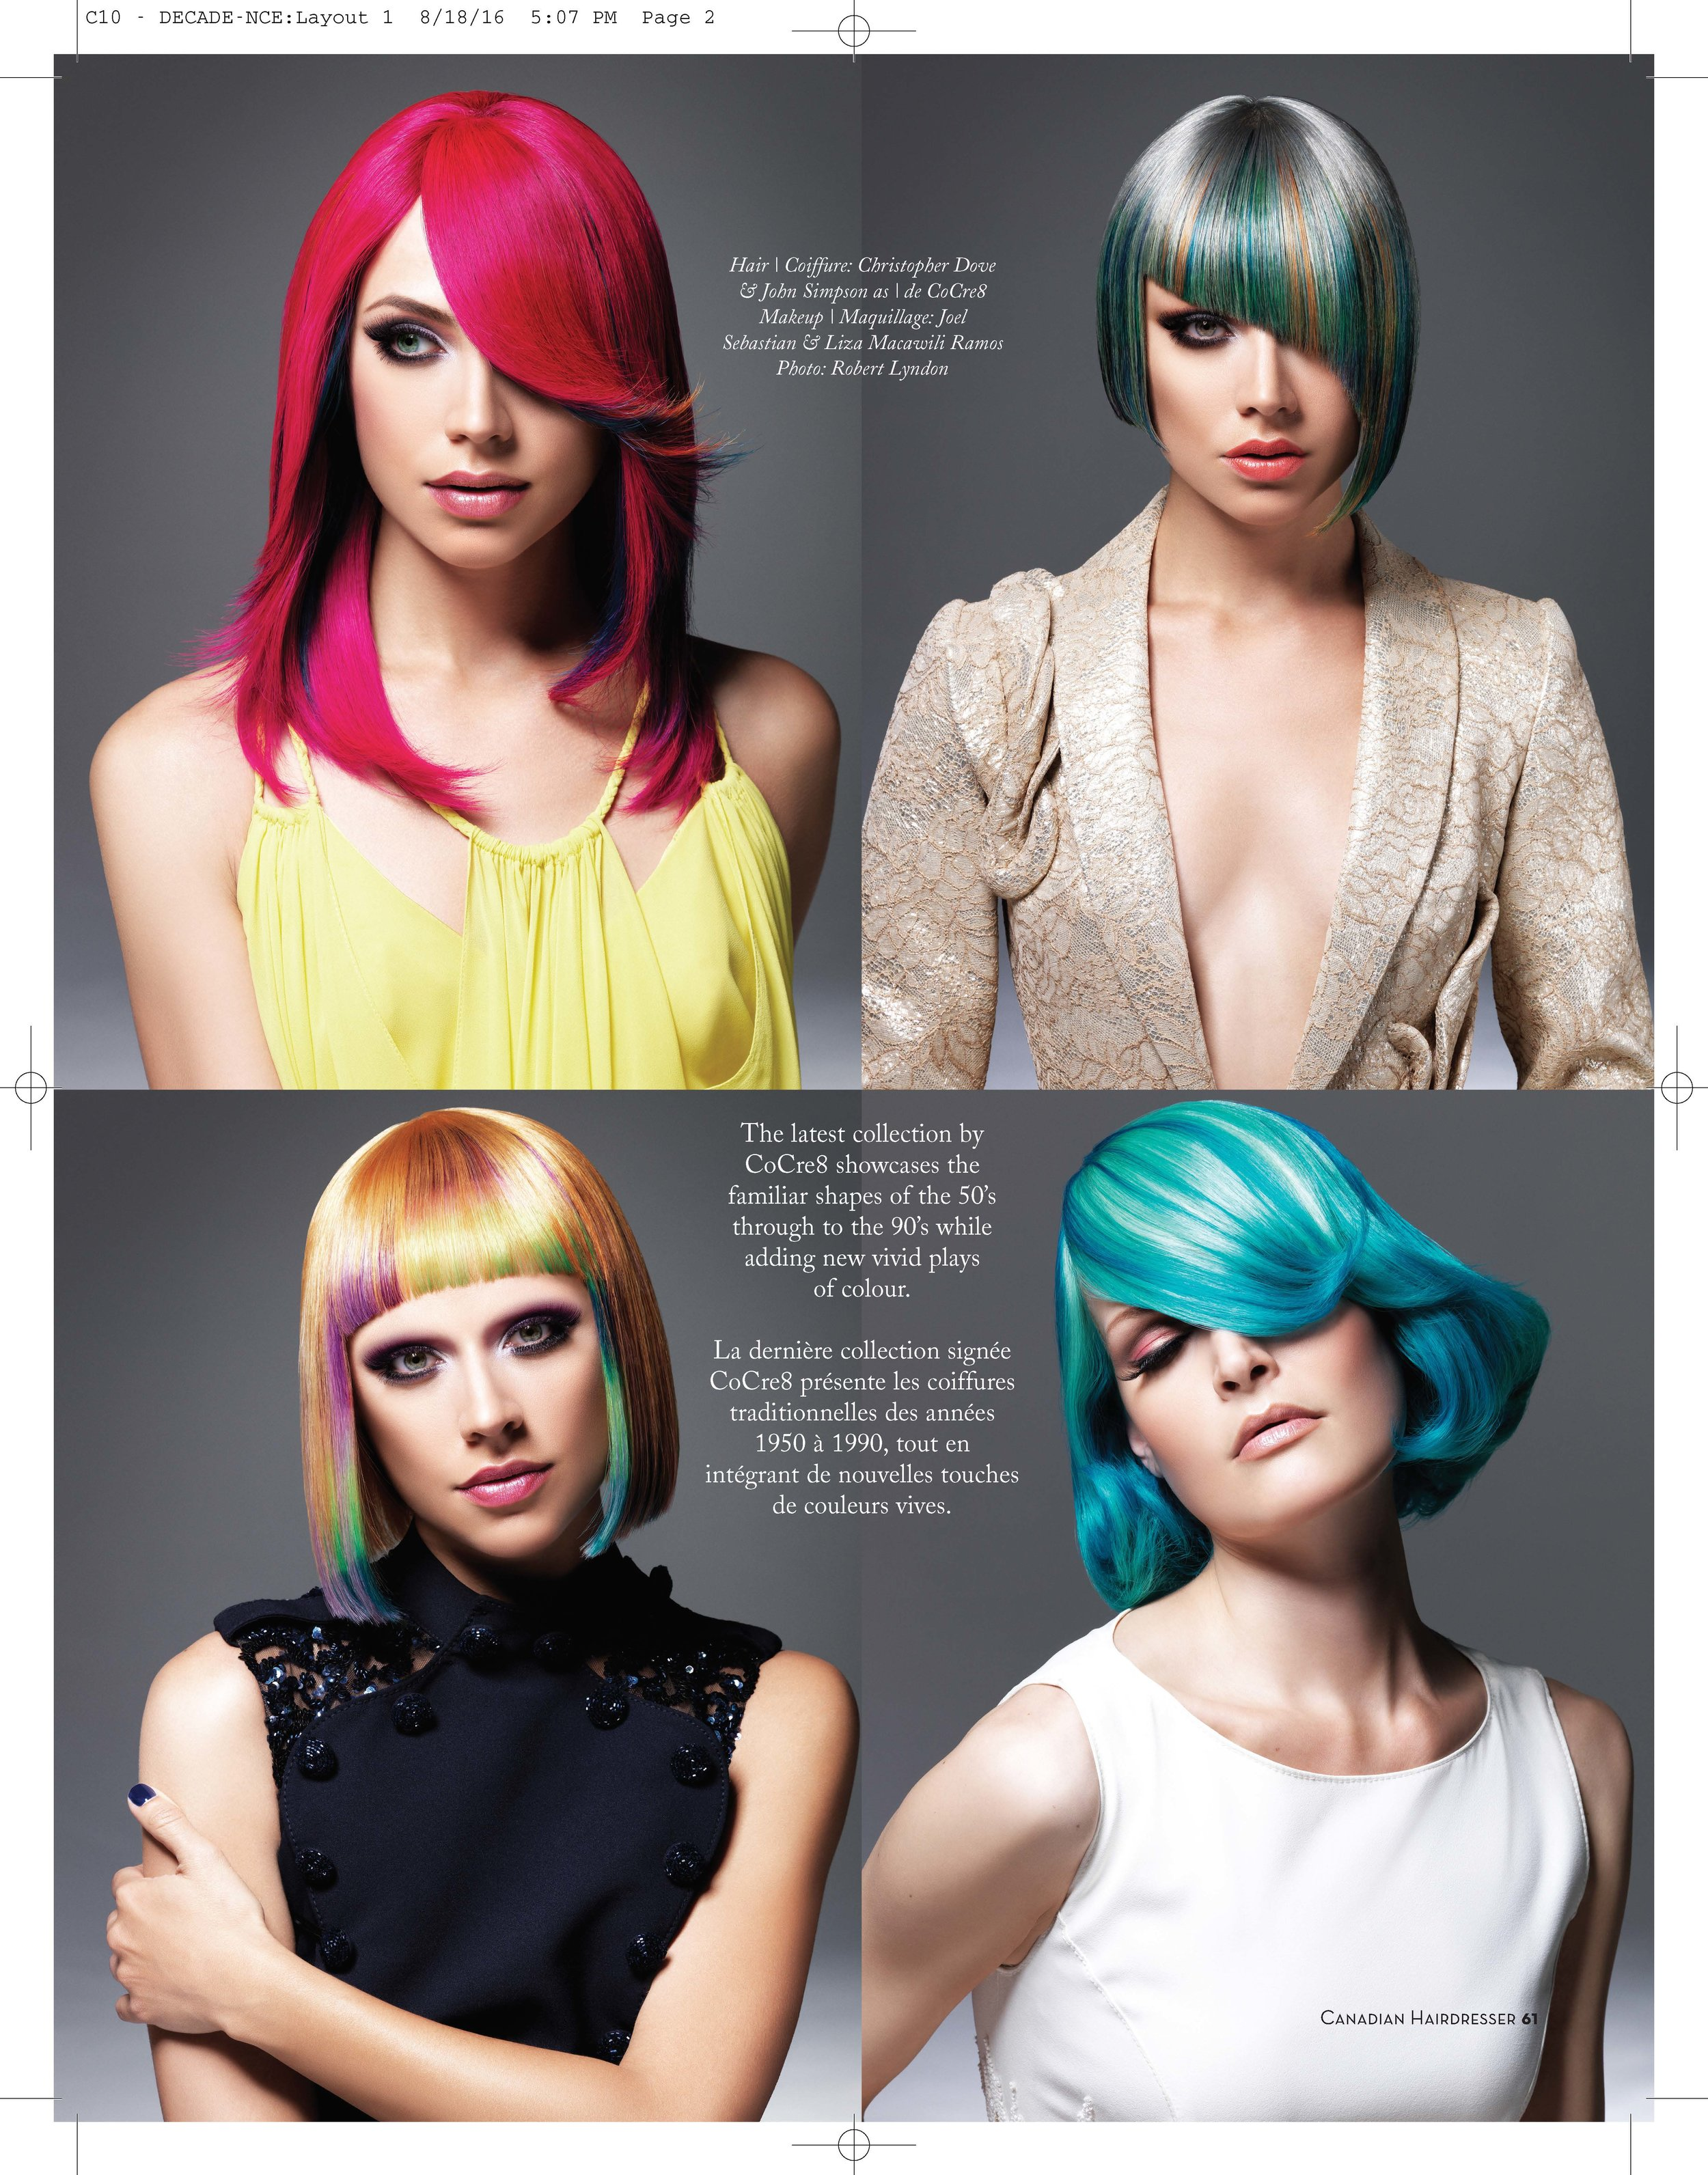 Canadian Hairdresser Magazine DECADE NCE_Page_2.jpg